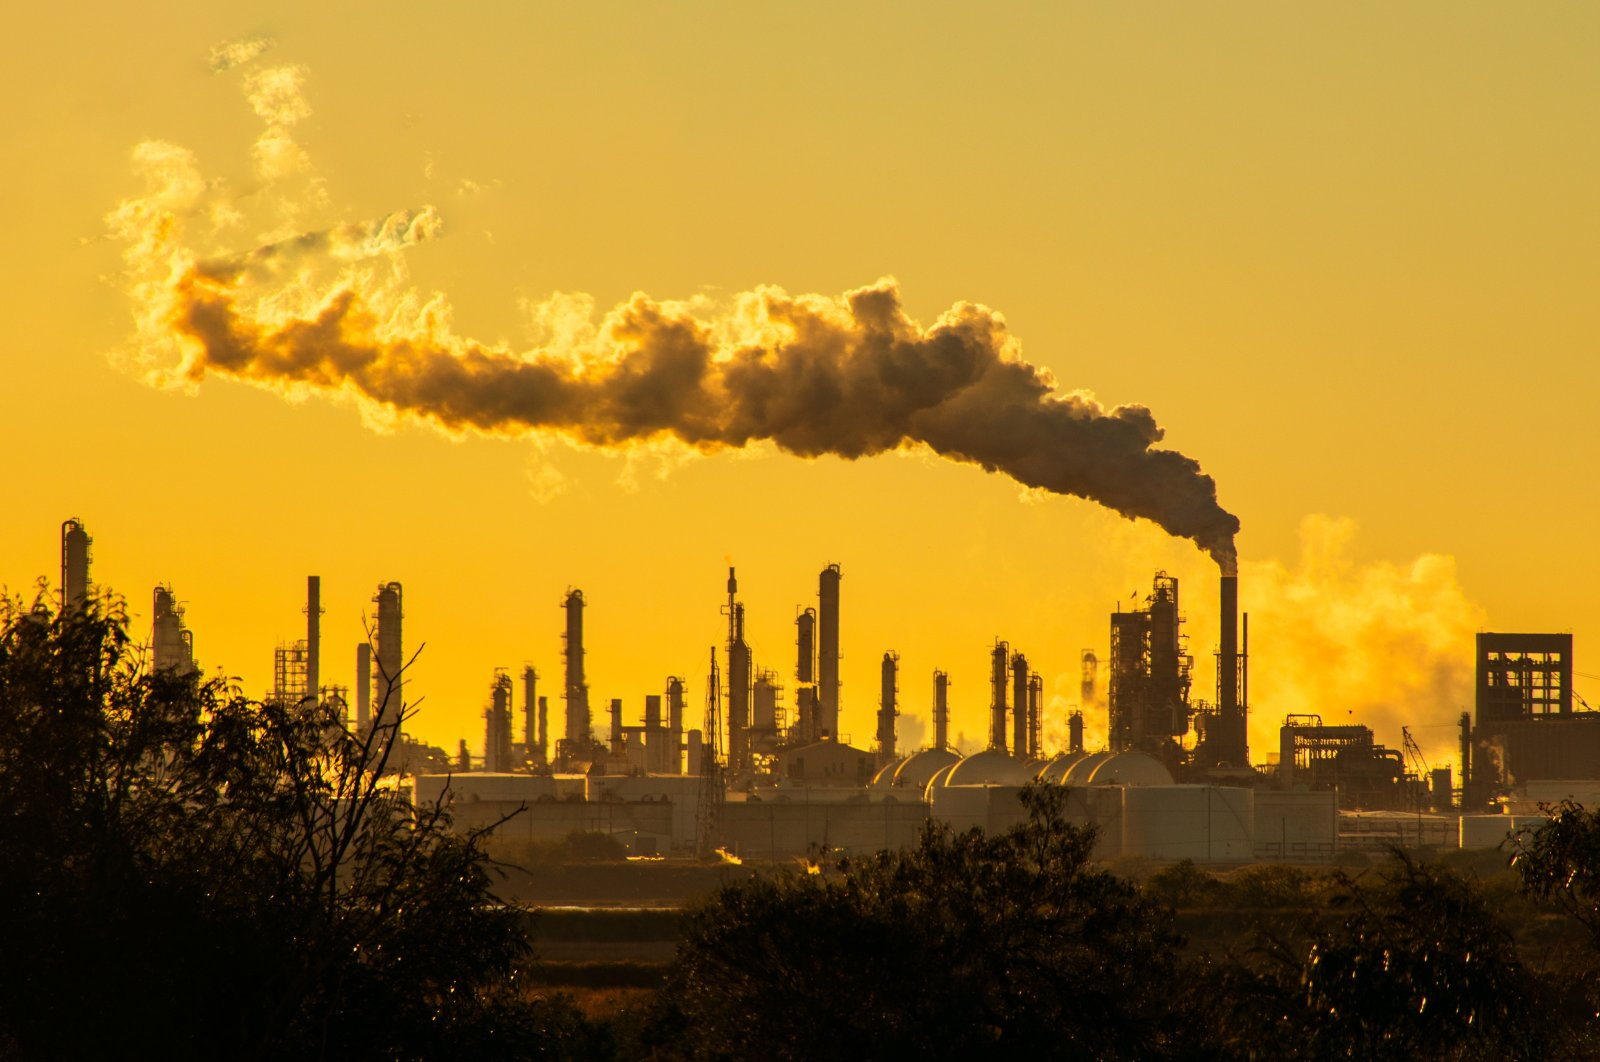 The largest source of greenhouse gas emissions in the U.S. is from burning fossil fuels for electricity. (Shutterstock Photo)